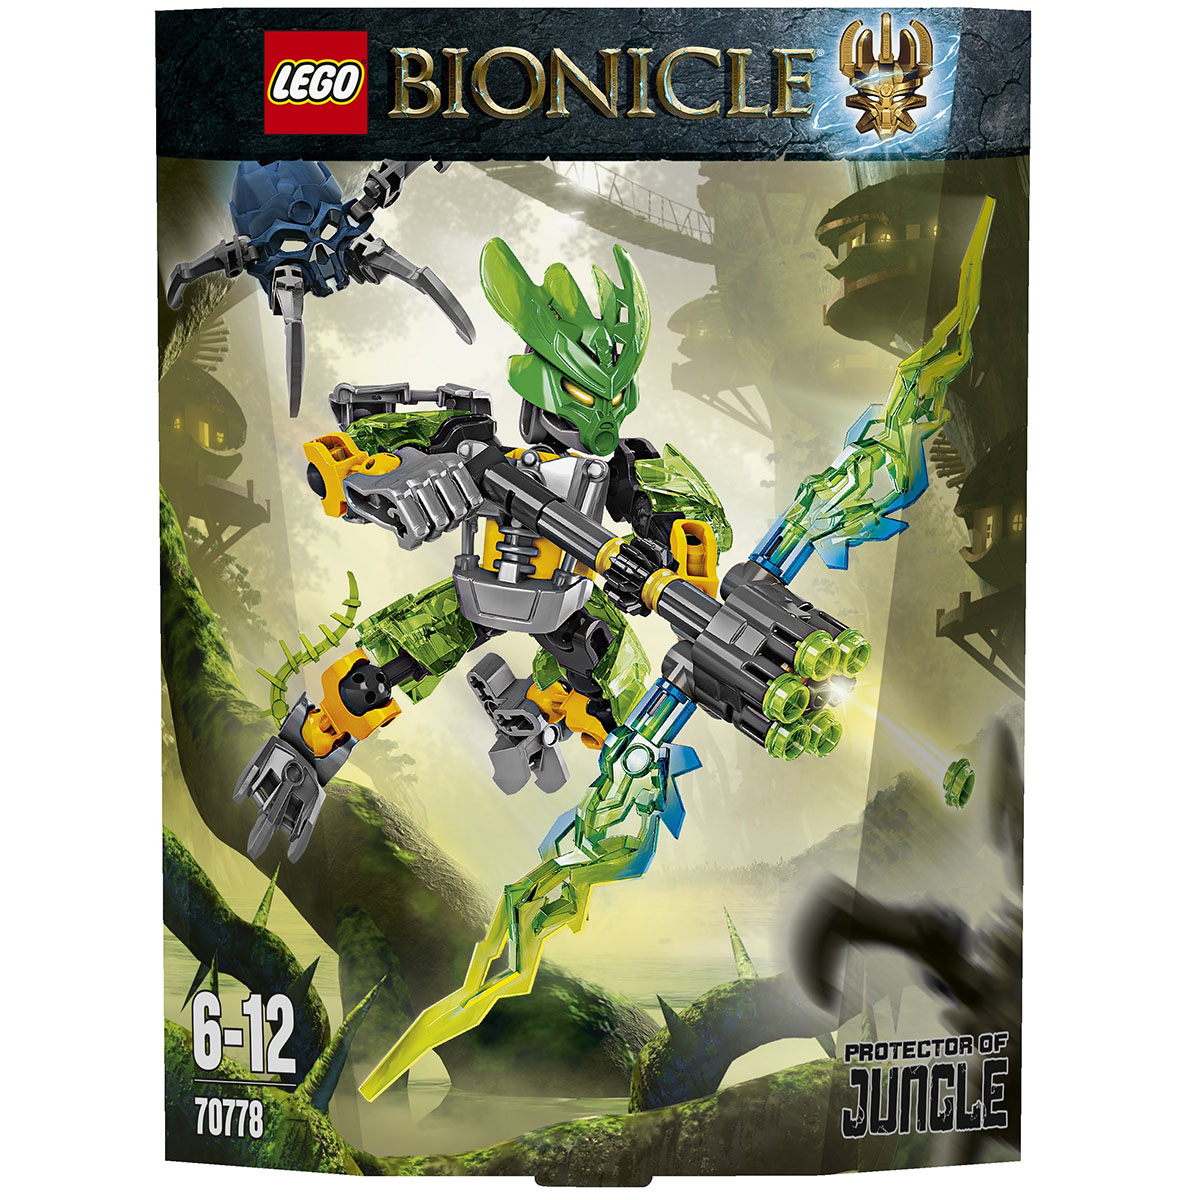 Lego Bionicle - Ho ve rung 70778